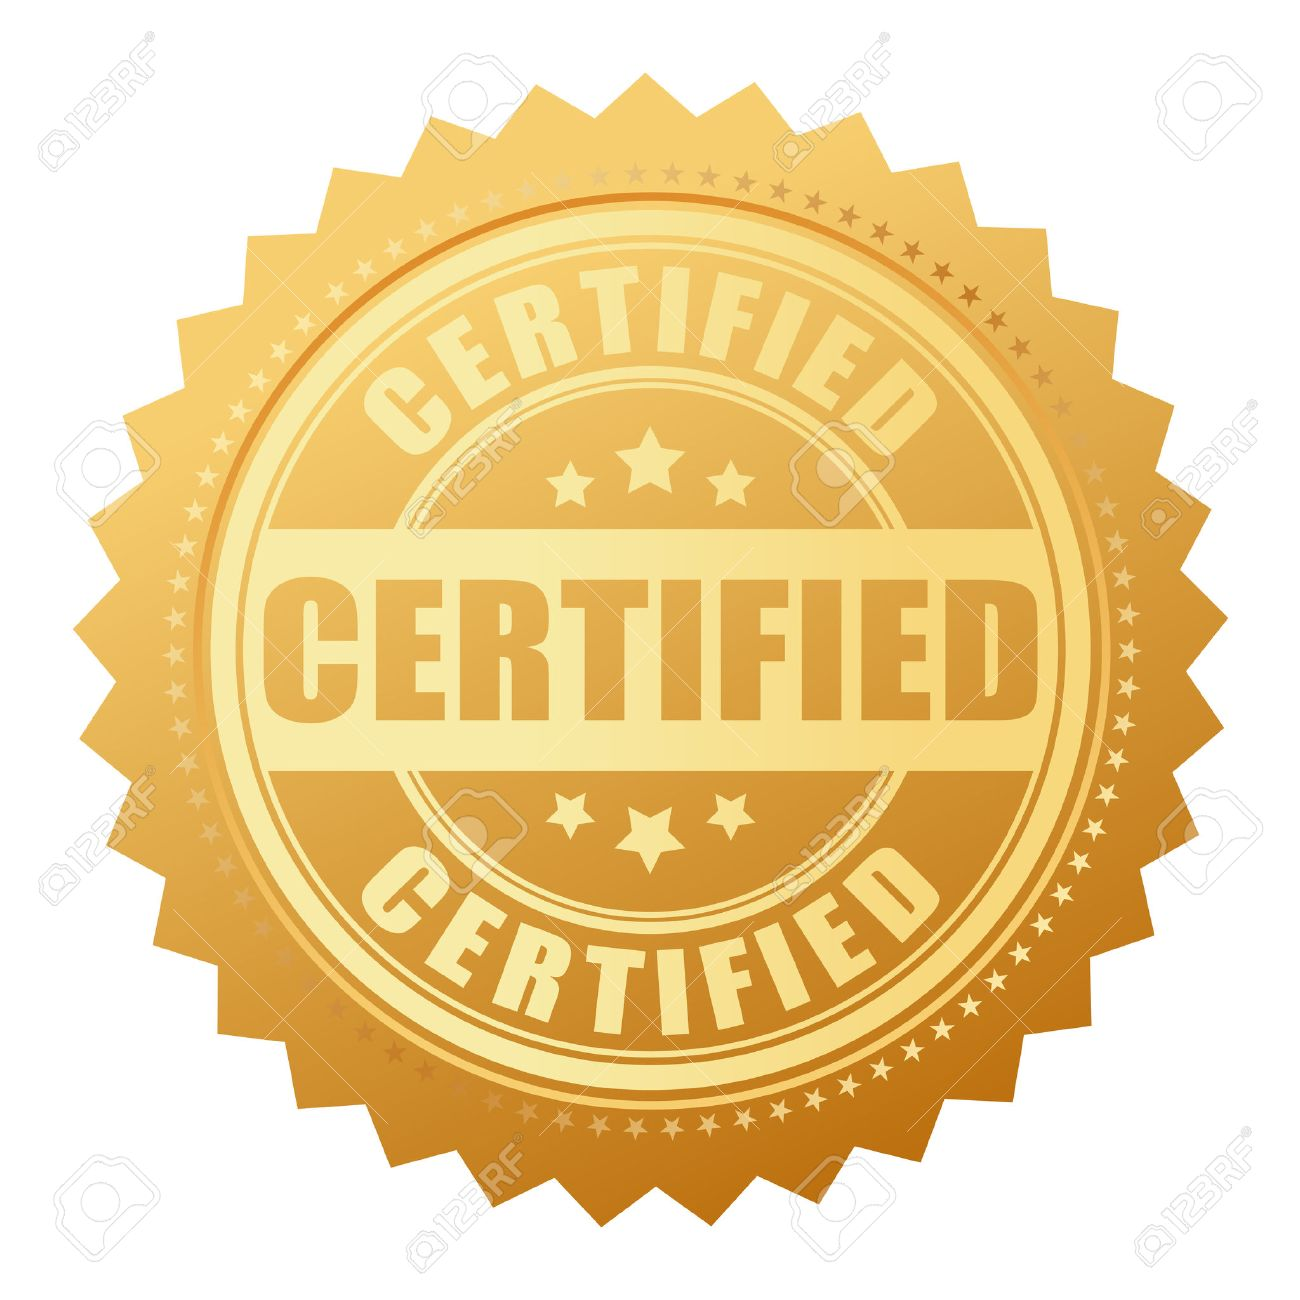 Certified Gold Seal Royalty Free Cliparts, Vectors, And Stock Illustration.  Image 46534837.